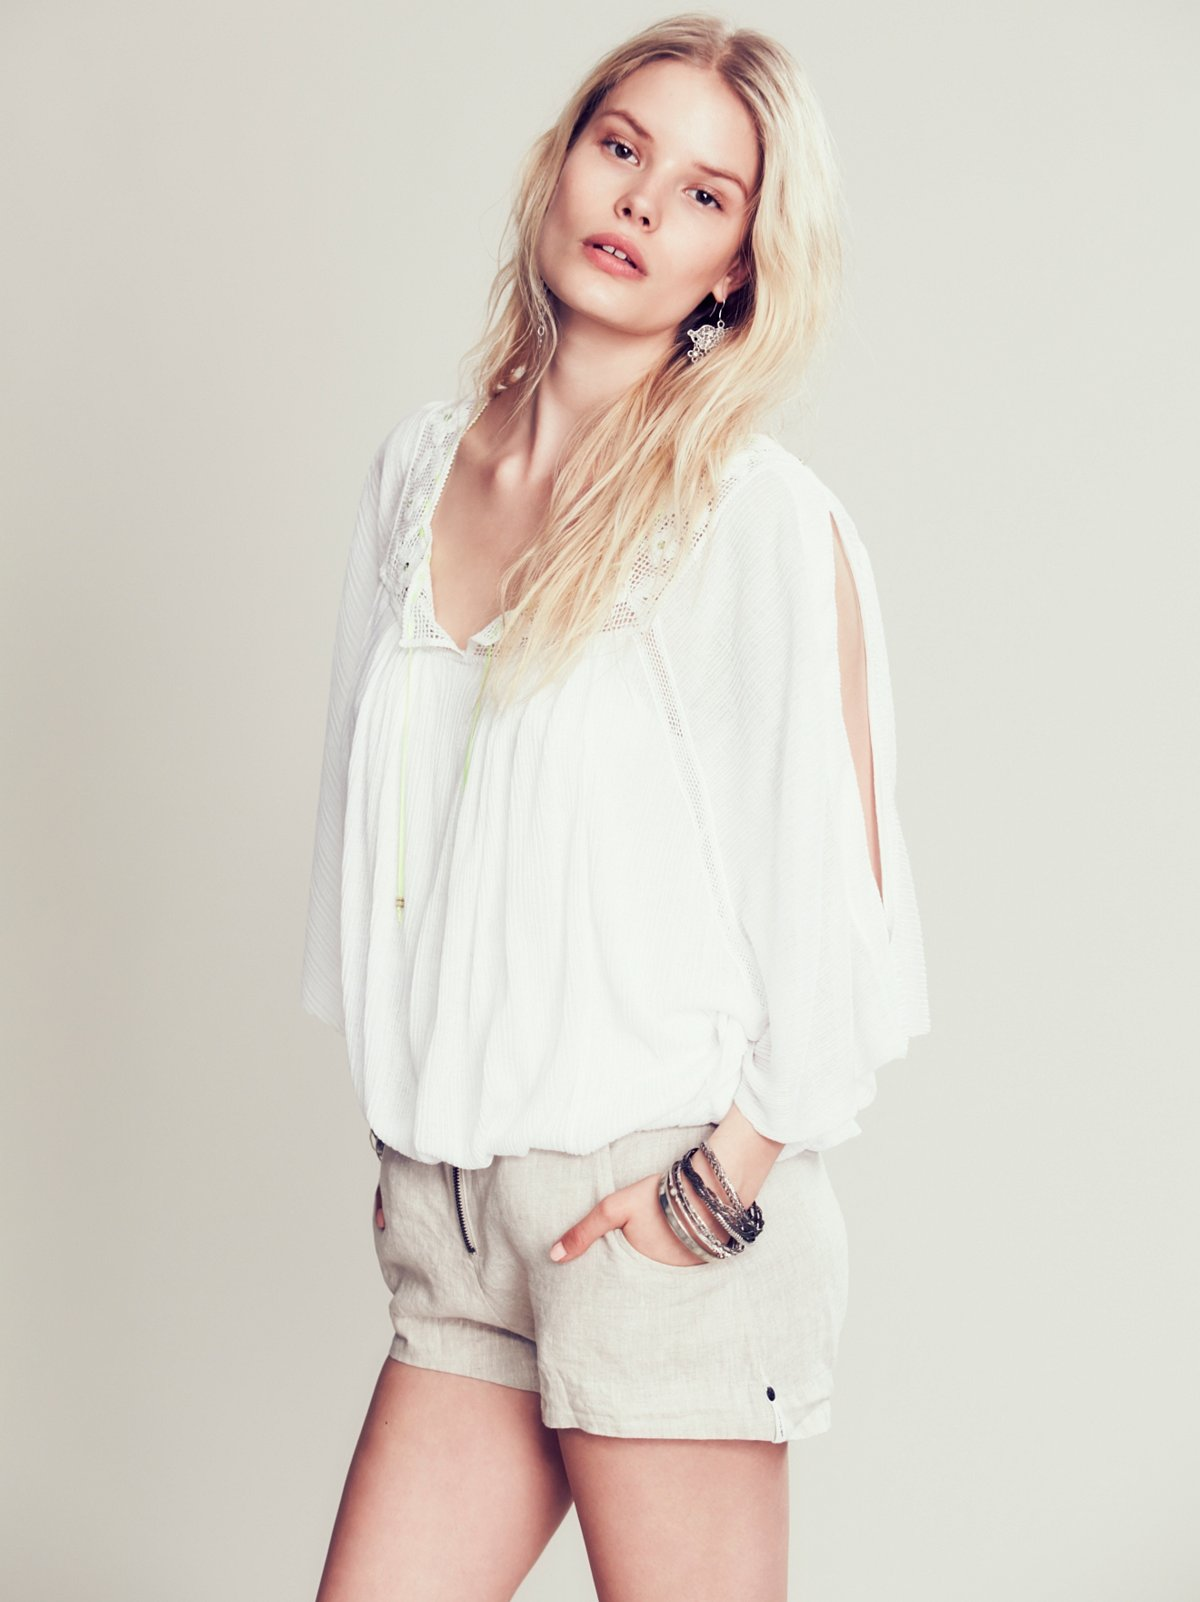 FP New Romantics Going Steady Blouse